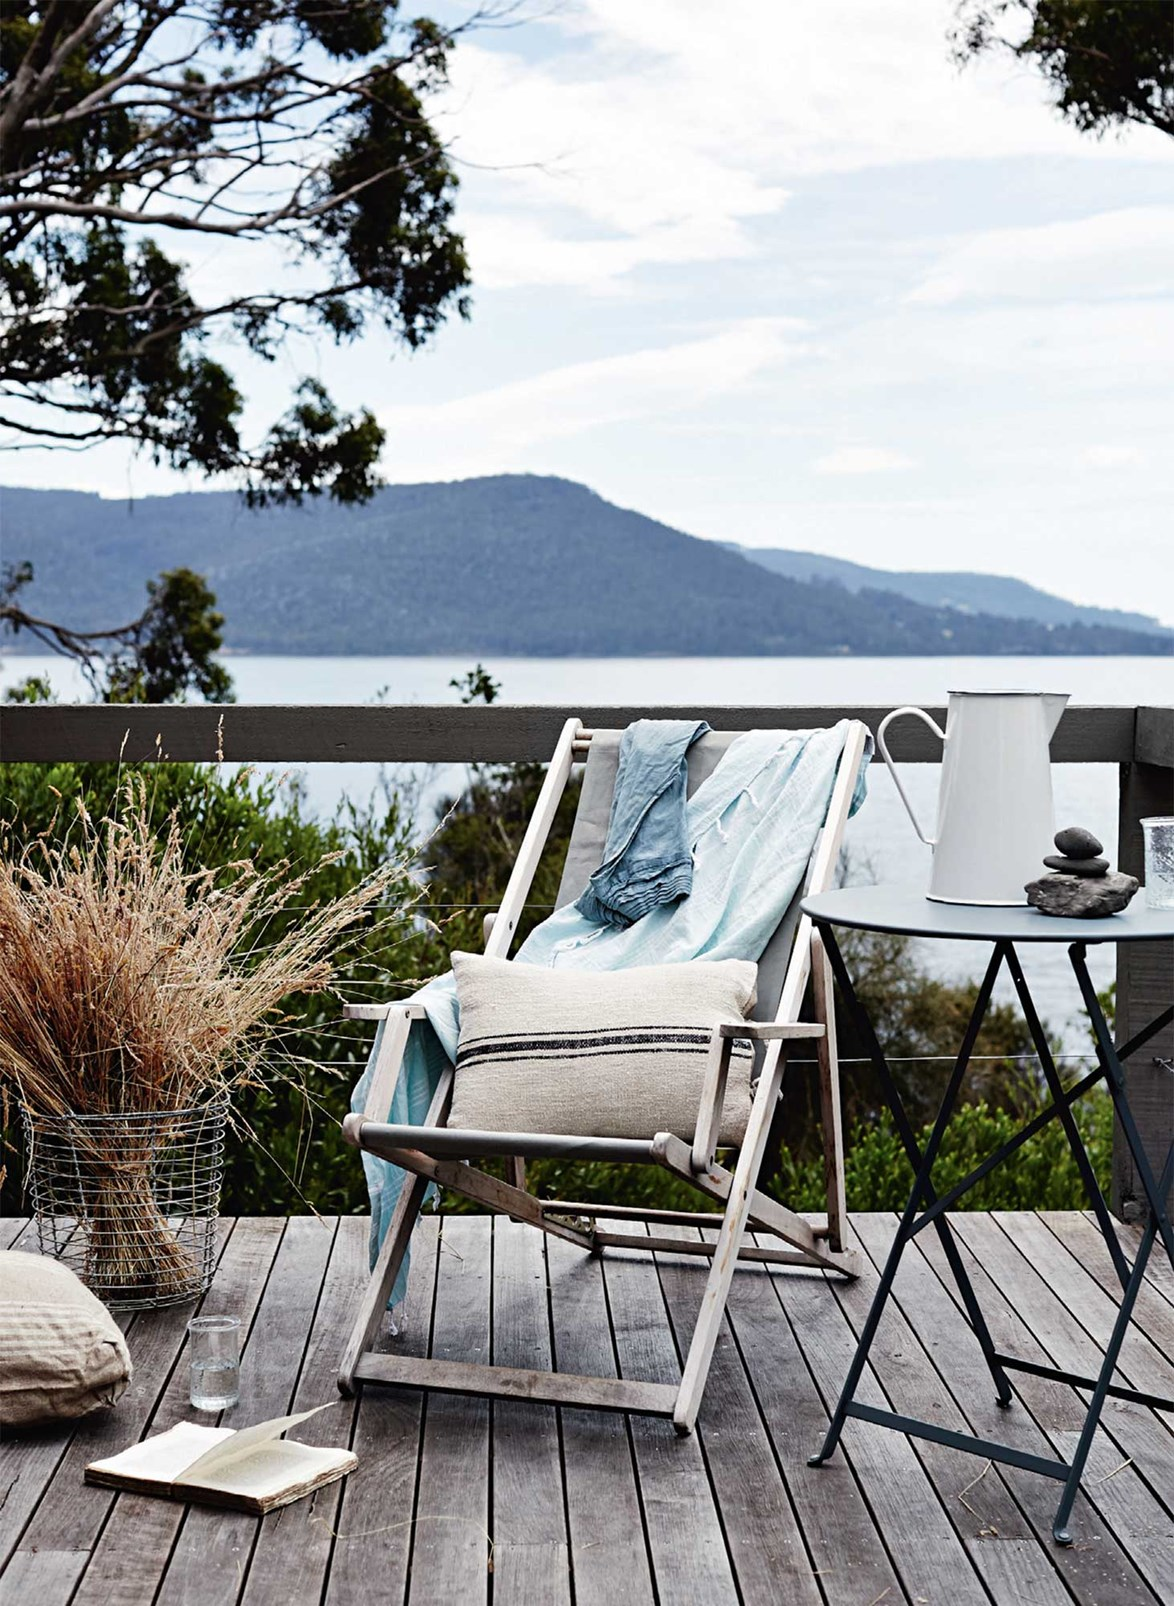 360 degree ocean views can be enjoyed from the deck of Summer House on Satellite Island. *Photo: Alicia Taylor*